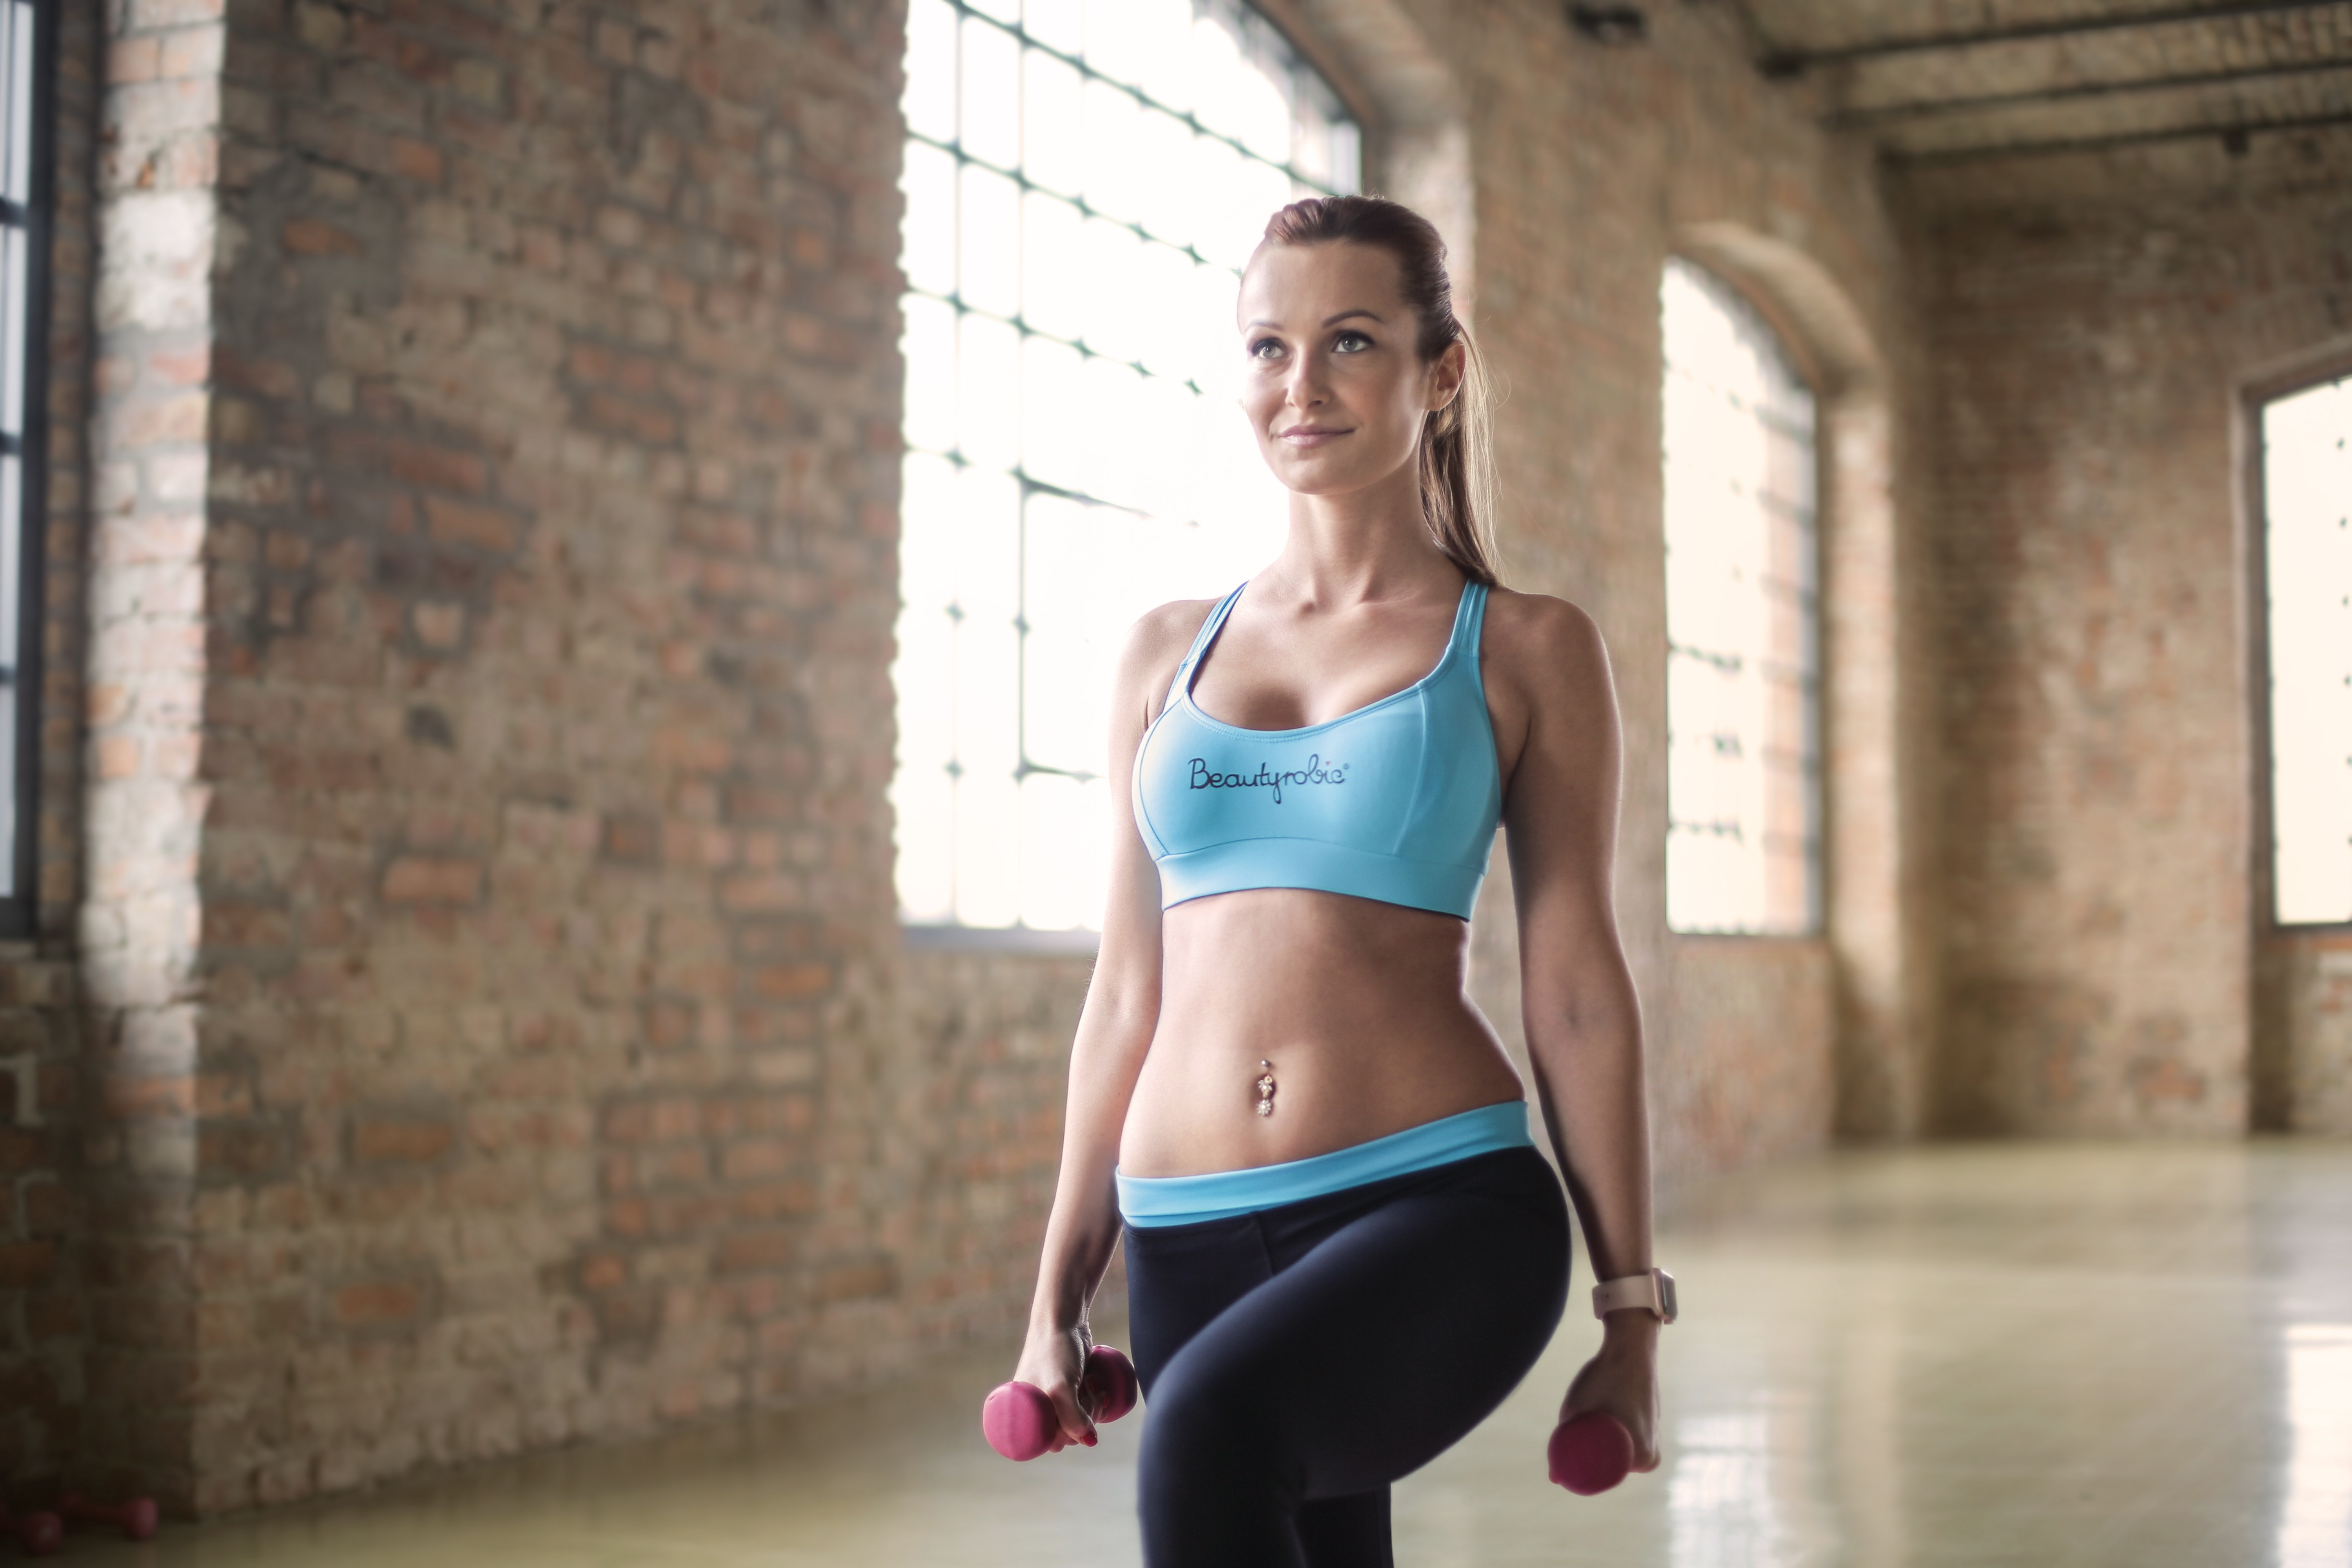 5 Best Workouts at Home to Lose Weight and Get a Flat Belly